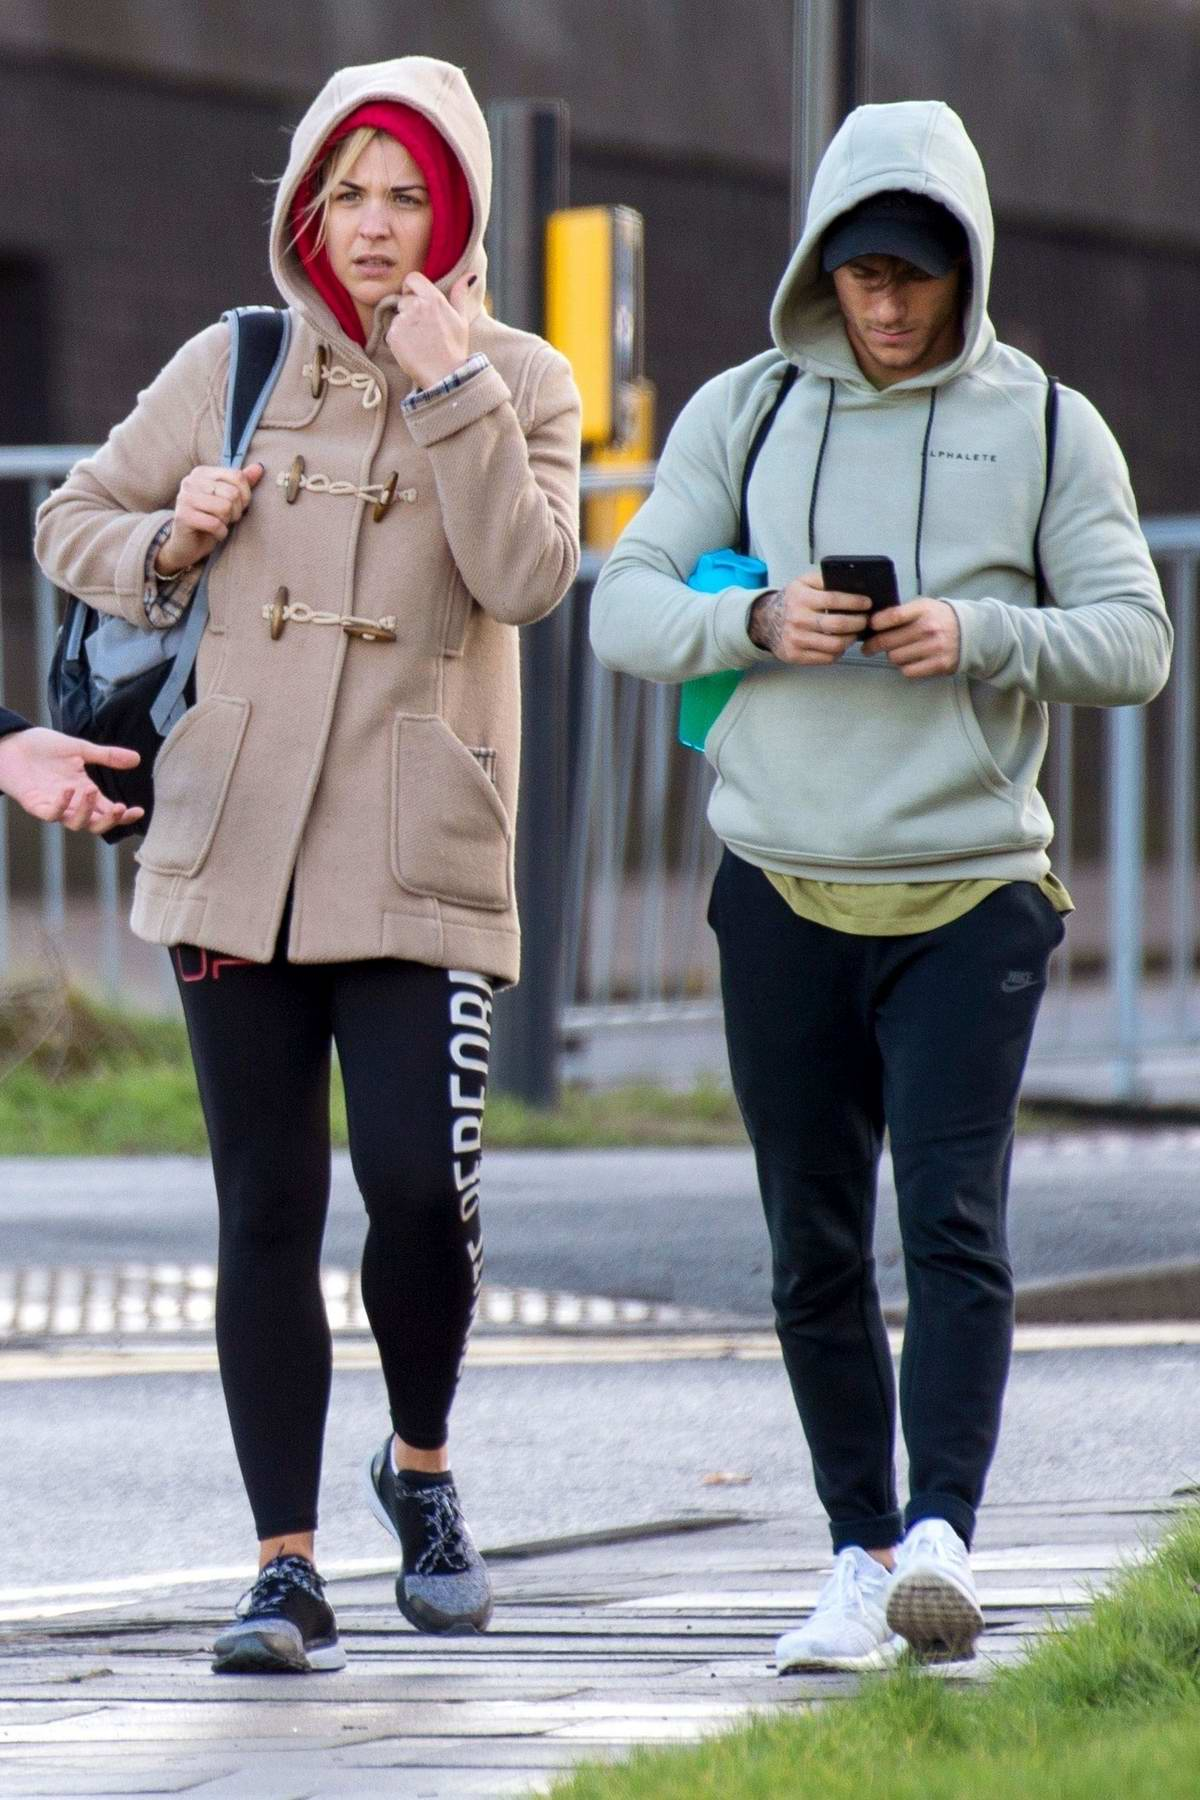 Gemma Atkinson and Gorka Marquez look tired as they leave another practice session in Newcastle, UK